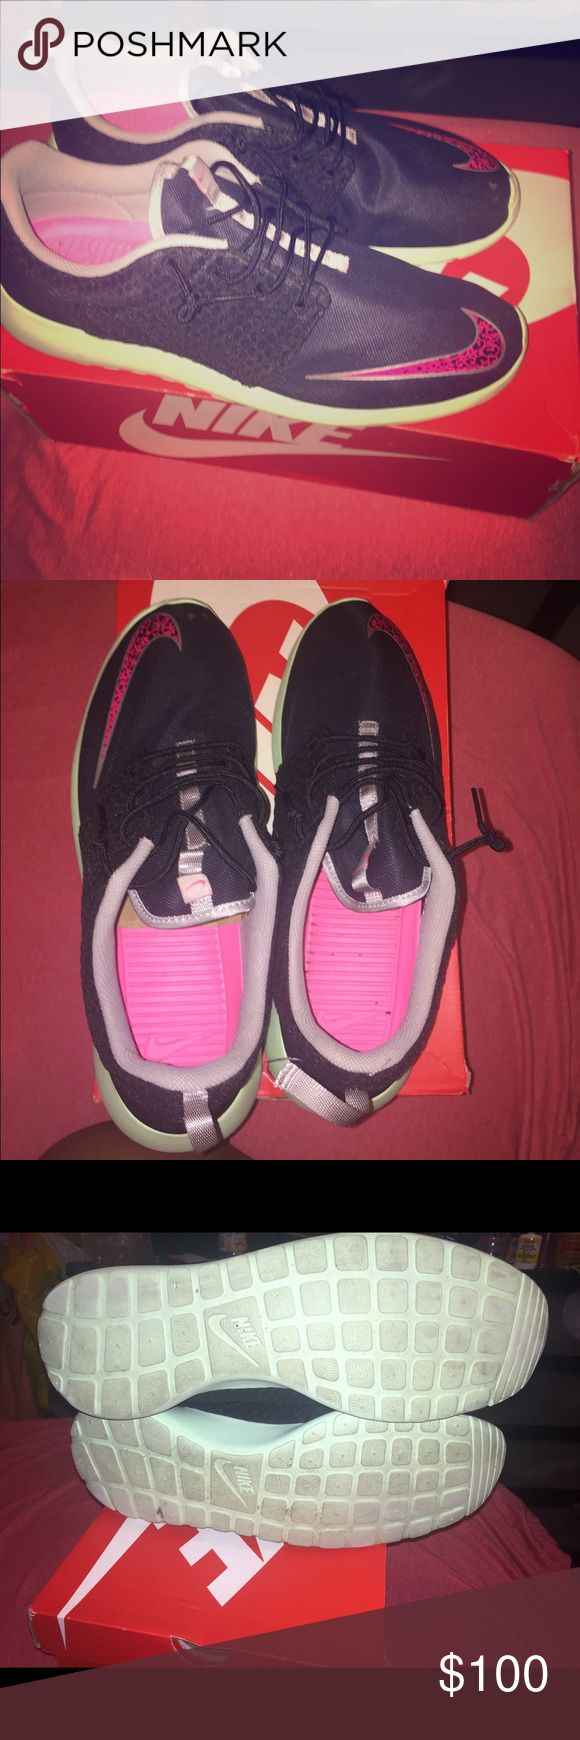 Yeezy Roshe Run Blk/Pink/mint men's yeezy Roshe run. EUC WORN TWICE. SIZE 15 comes with original box Nike Shoes Sneakers